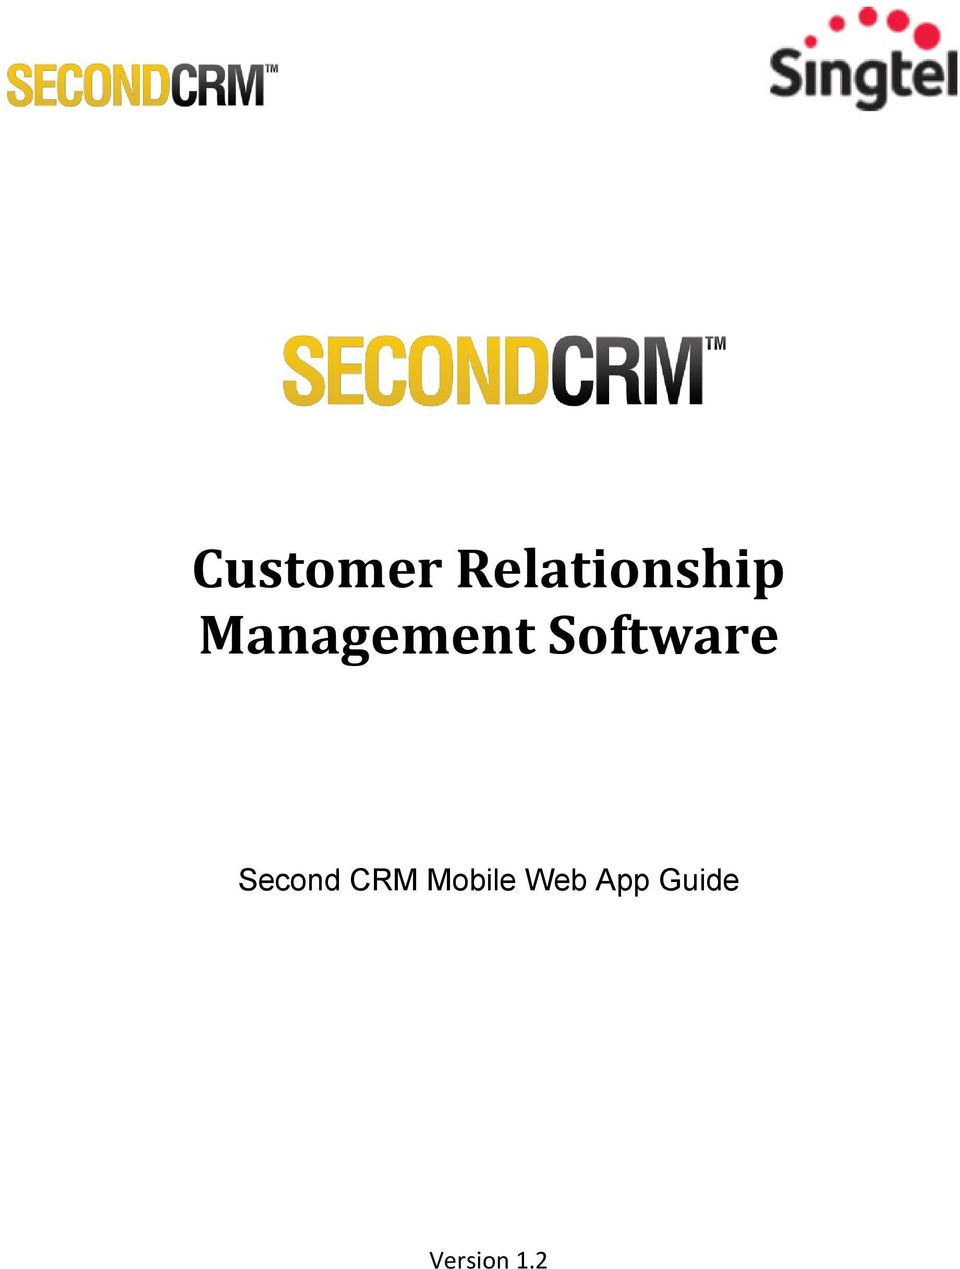 Second CRM Mobile Web